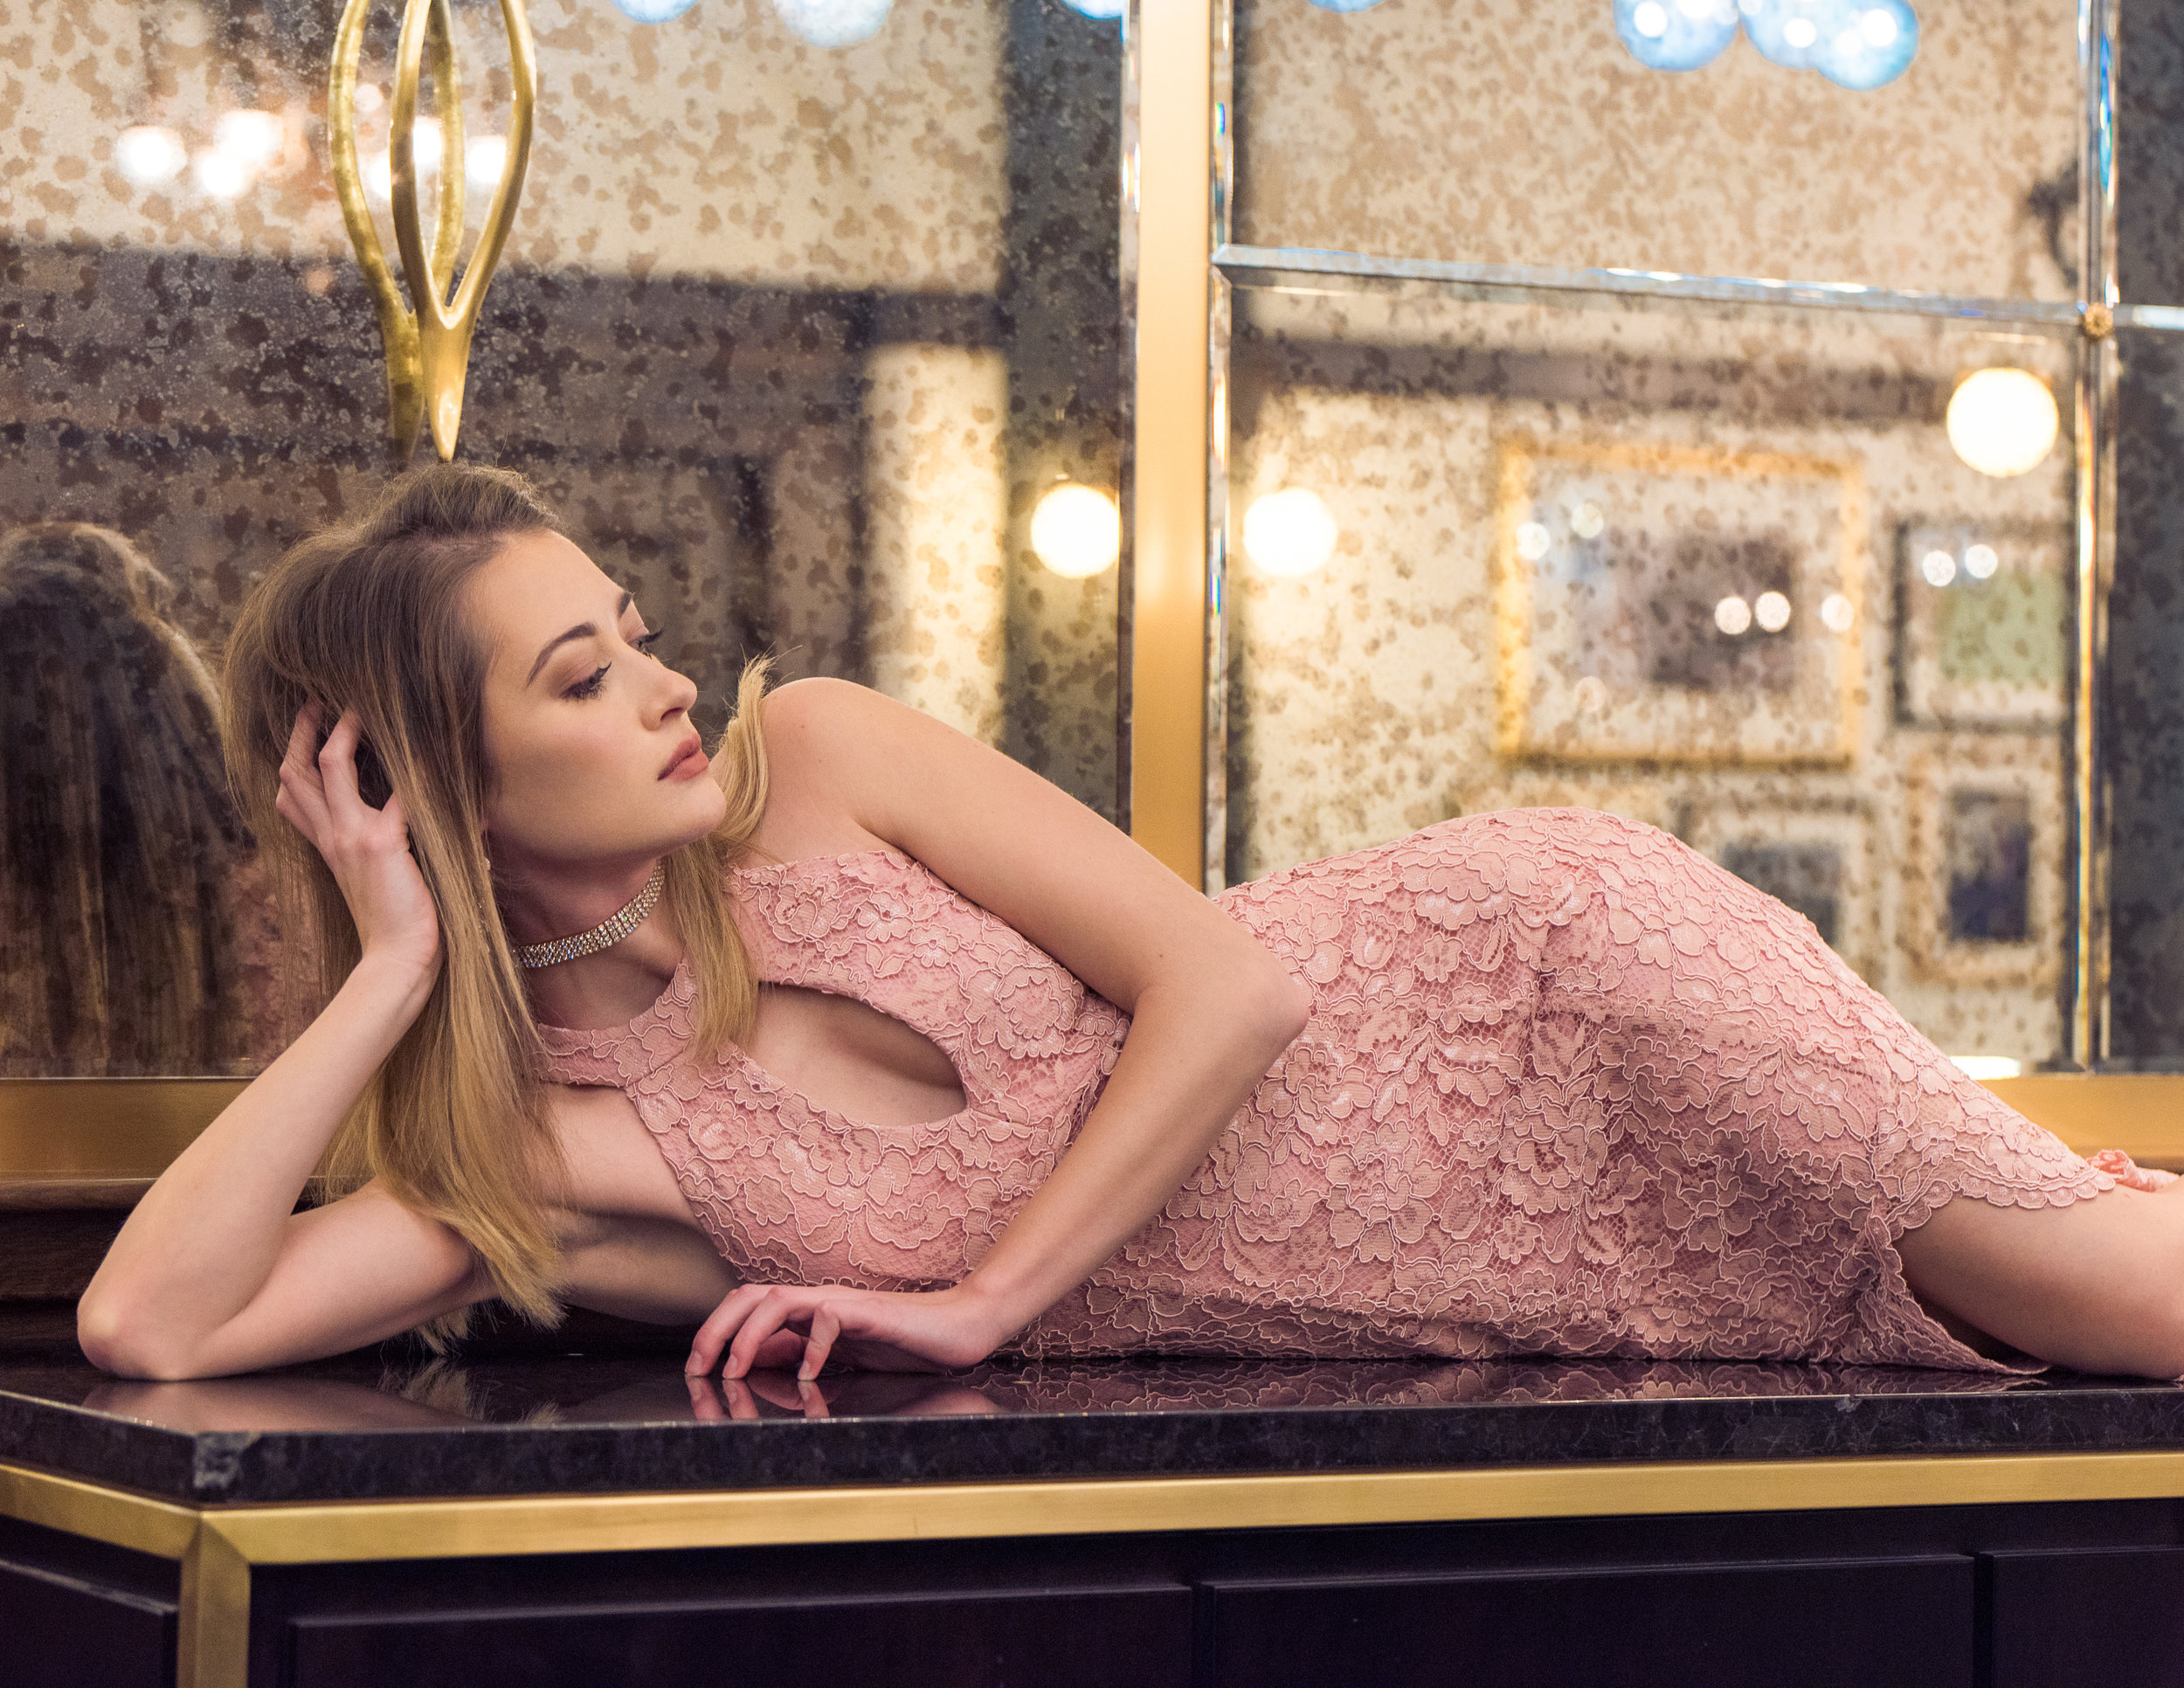 """Stephanie in a Le Chateau evening wear dress in editorial """"Queen Stephanie"""" published in Elegant Magazine. Styling by Trevor Premack of Le Chateau Mayfair, makeup by Stephanie herself, photo &retouching by me."""